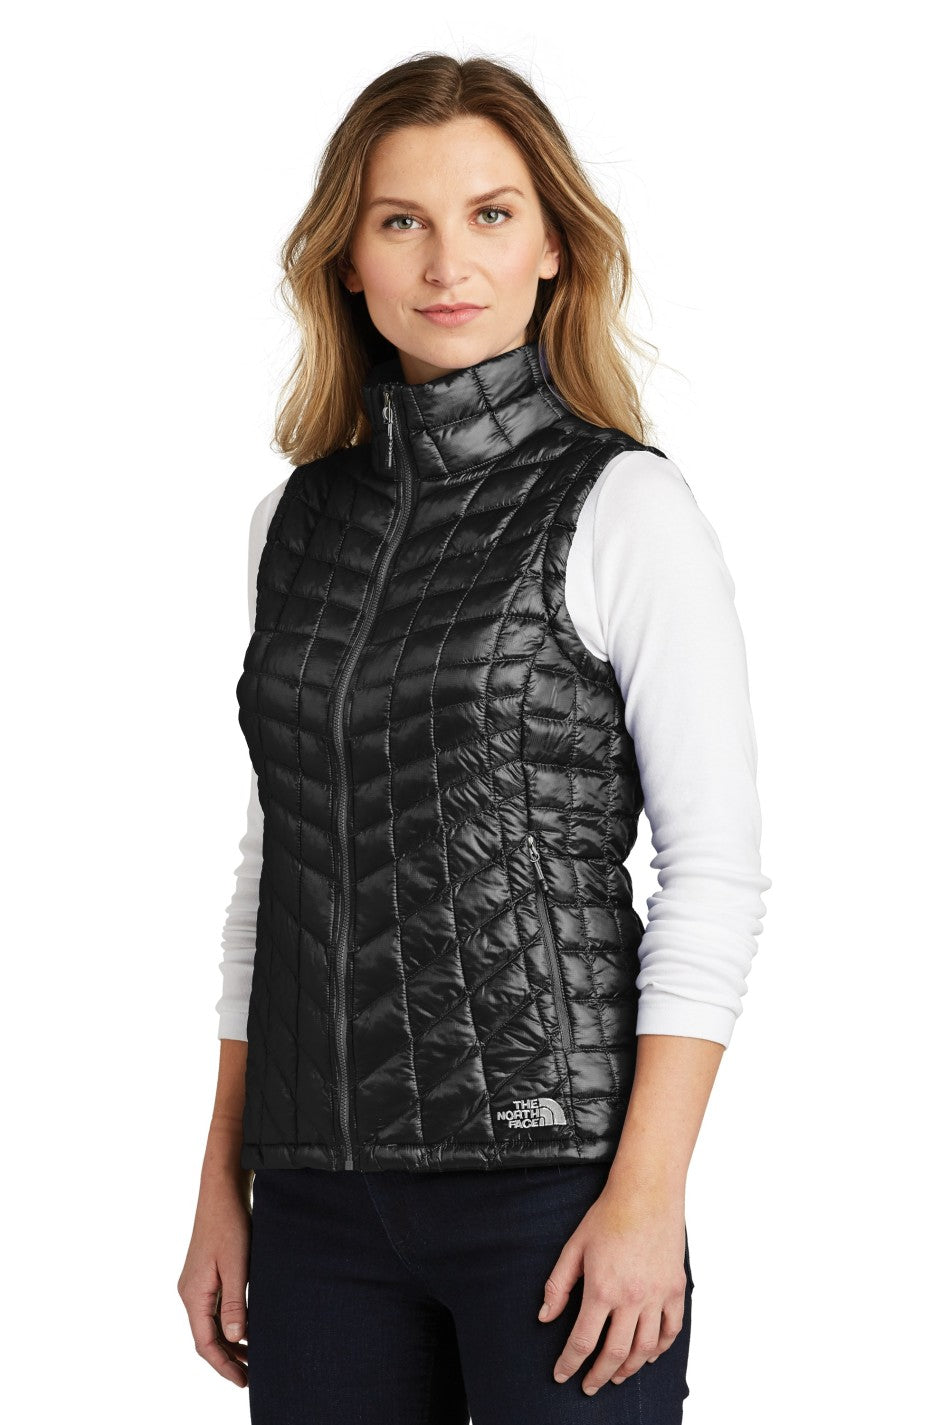 SANMAR THE NORTH FACE® LADIES THERMOBALL™ TREKKER VEST